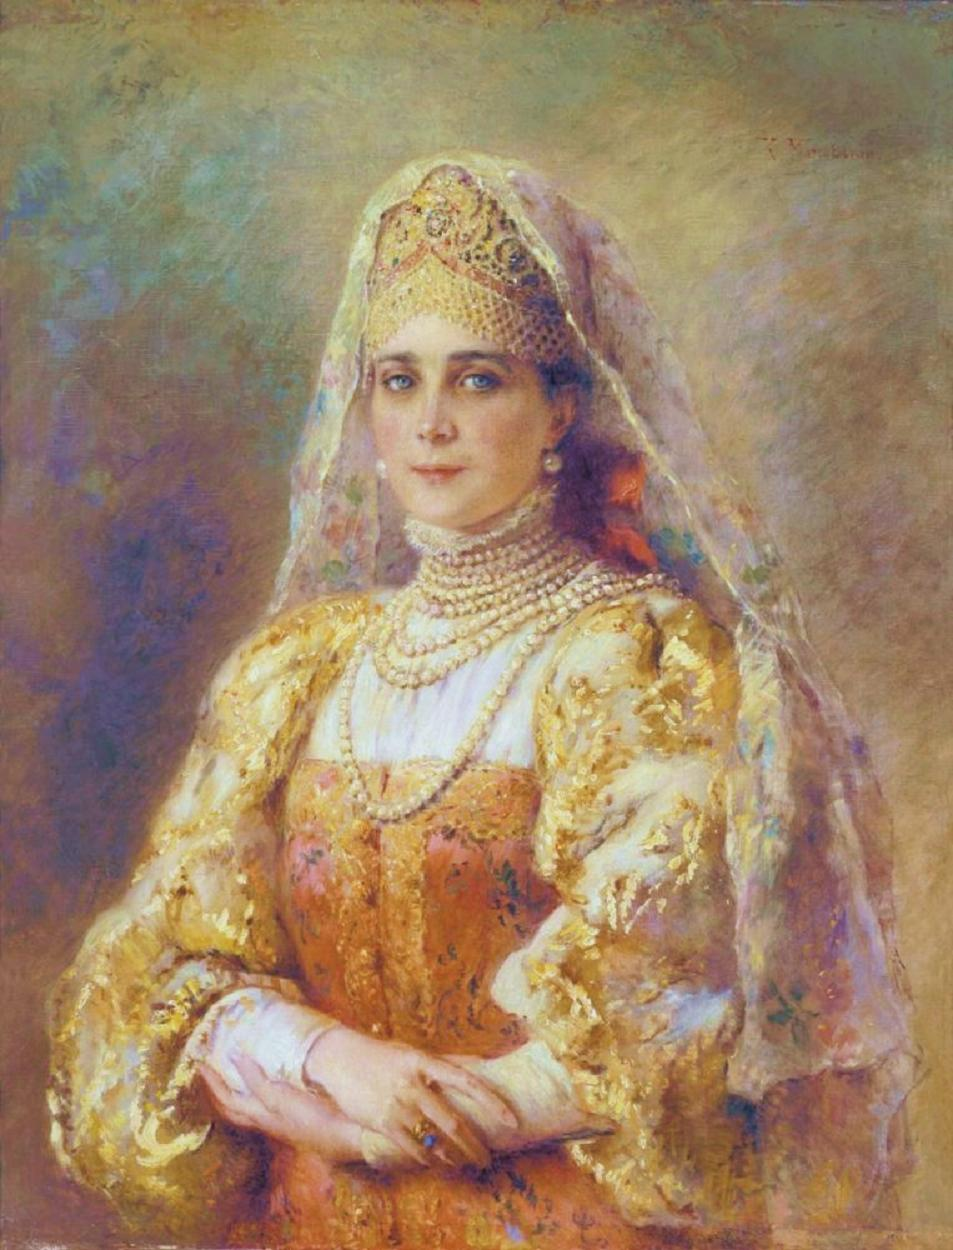 konstantin-makovsky-a-portrait-of-princess-zinaida-yusupova-in-old-russian-dress-1895